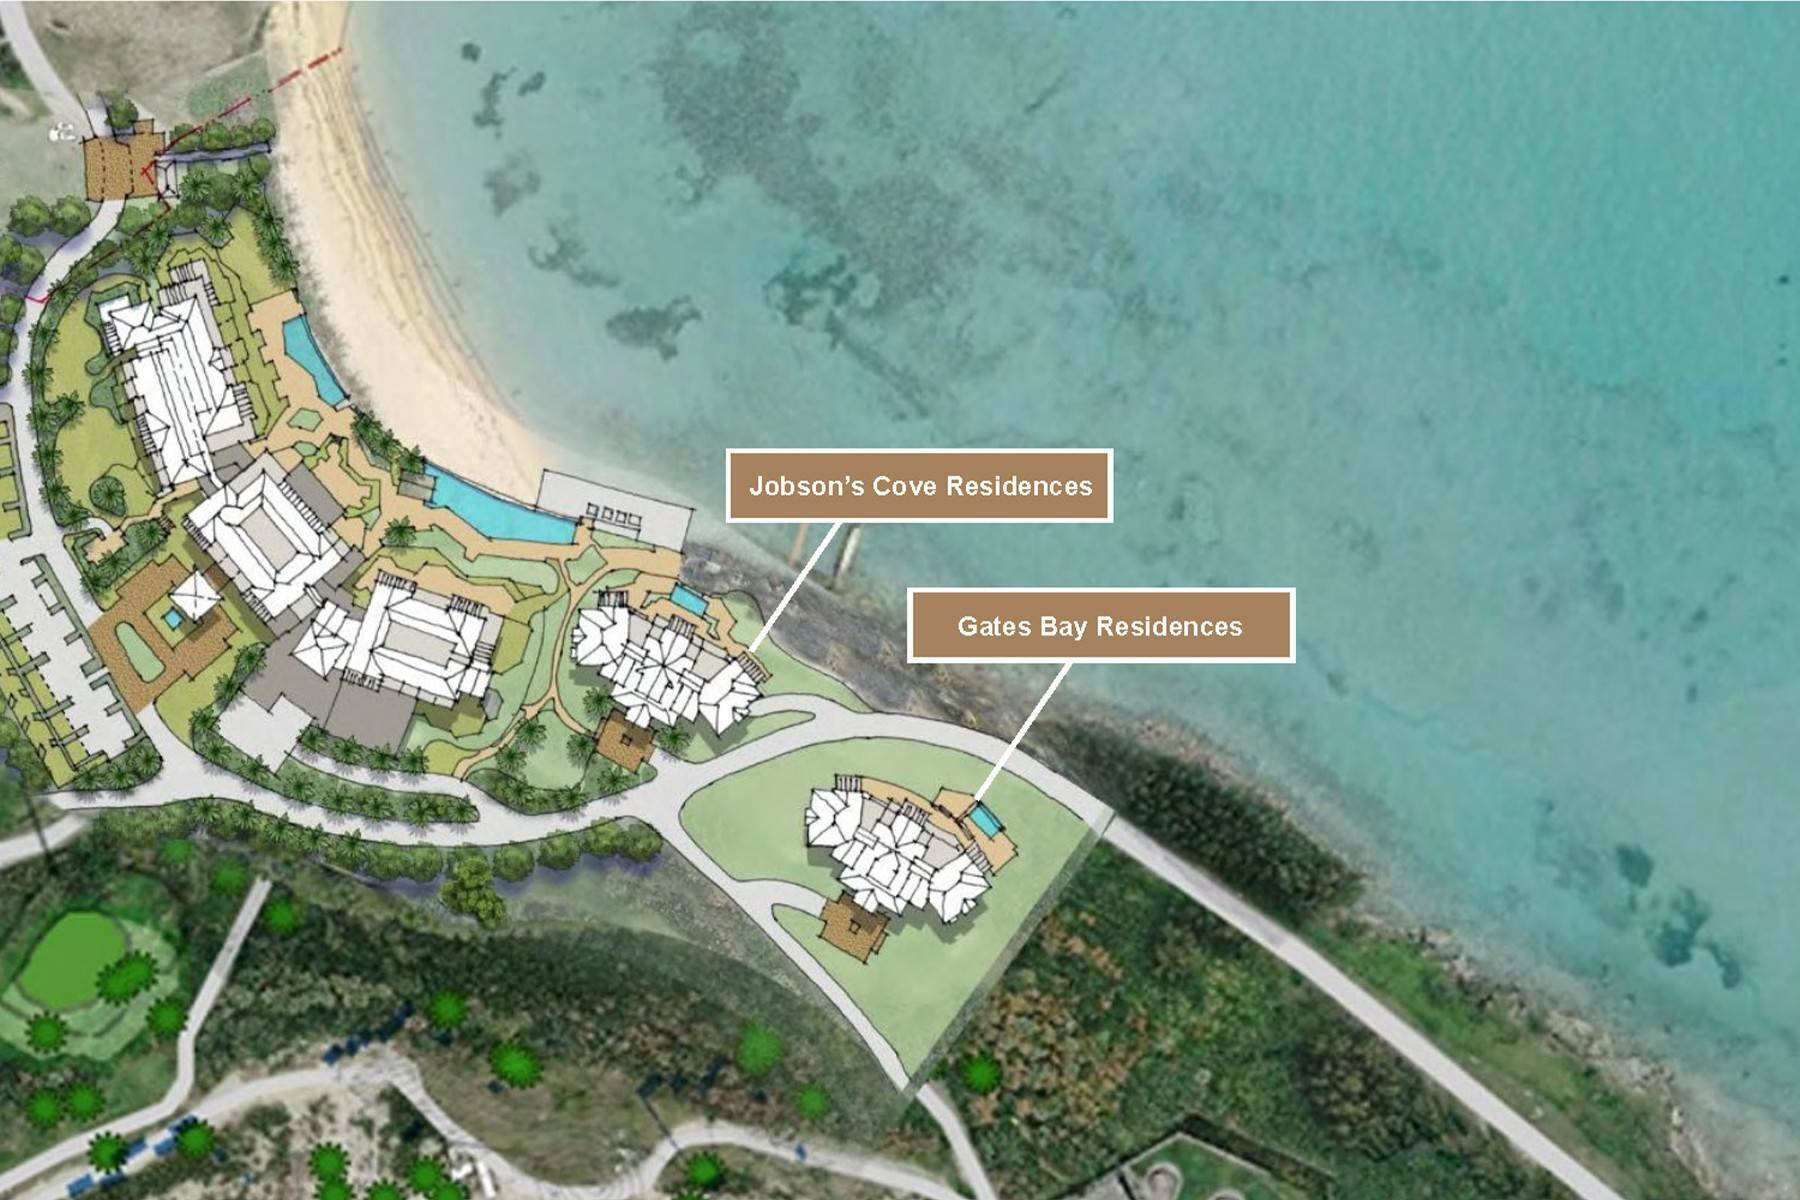 21. Condo / Townhouse / Flat for Sale at St. Regis Bermuda Residences - Gates Bay 4B St. Catherine's Beach St Georges Parish, GE03 Bermuda